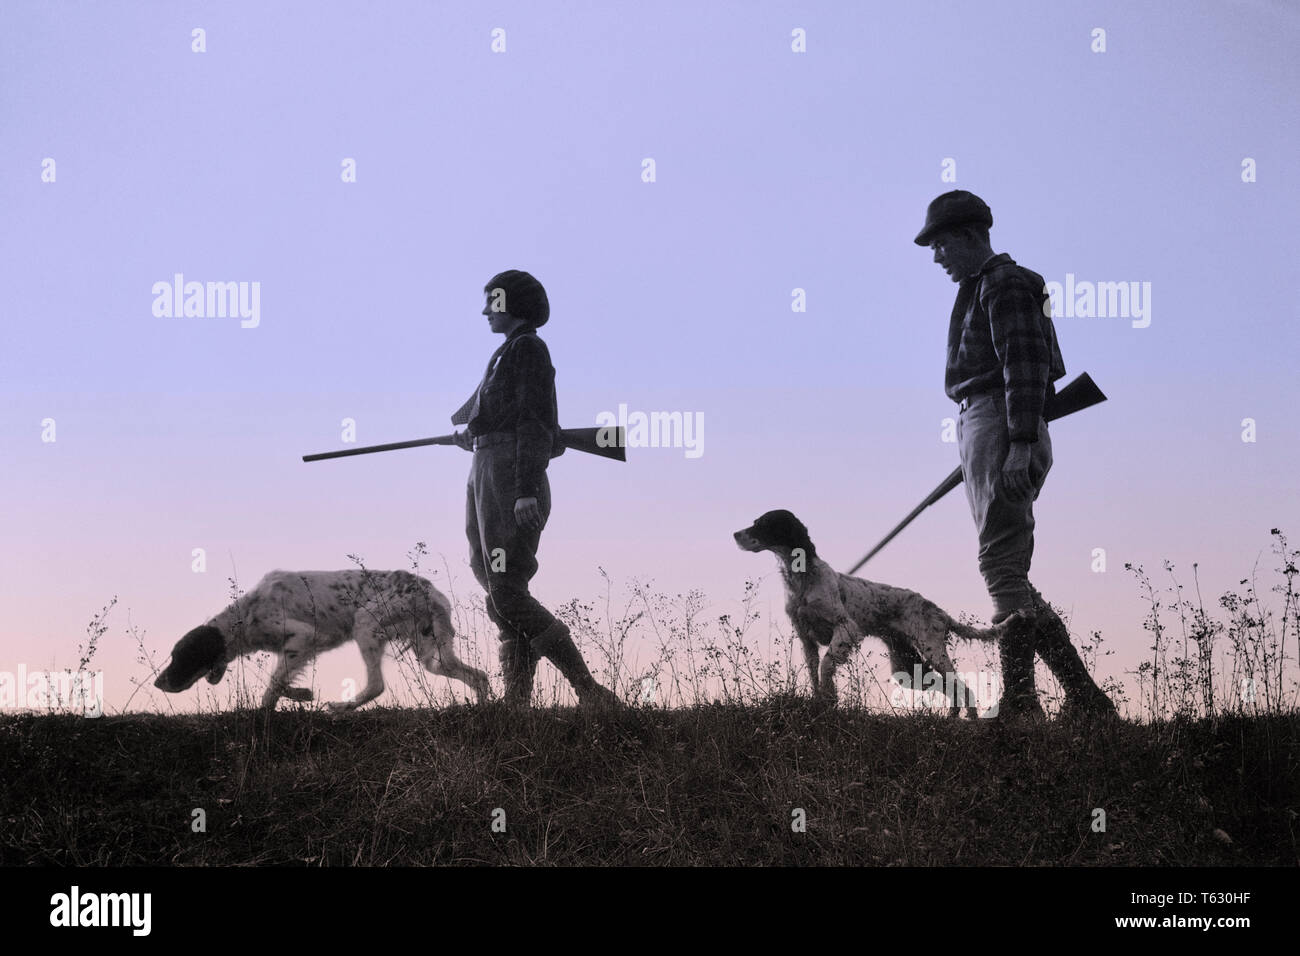 1920s 1930s ANONYMOUS SILHOUETTE MAN AND WOMAN HUNTERS CARRYING GUNS EACH WITH A HUNTING DOG  - s2541b HAR001 HARS LEISURE SILHOUETTED AND CANINES RECREATION POOCH CONNECTION ANONYMOUS CANINE COOPERATION FIREARM FIREARMS HUNTERS MAMMAL MID-ADULT MID-ADULT MAN MID-ADULT WOMAN TOGETHERNESS BLACK AND WHITE HAR001 OLD FASHIONED - Stock Image